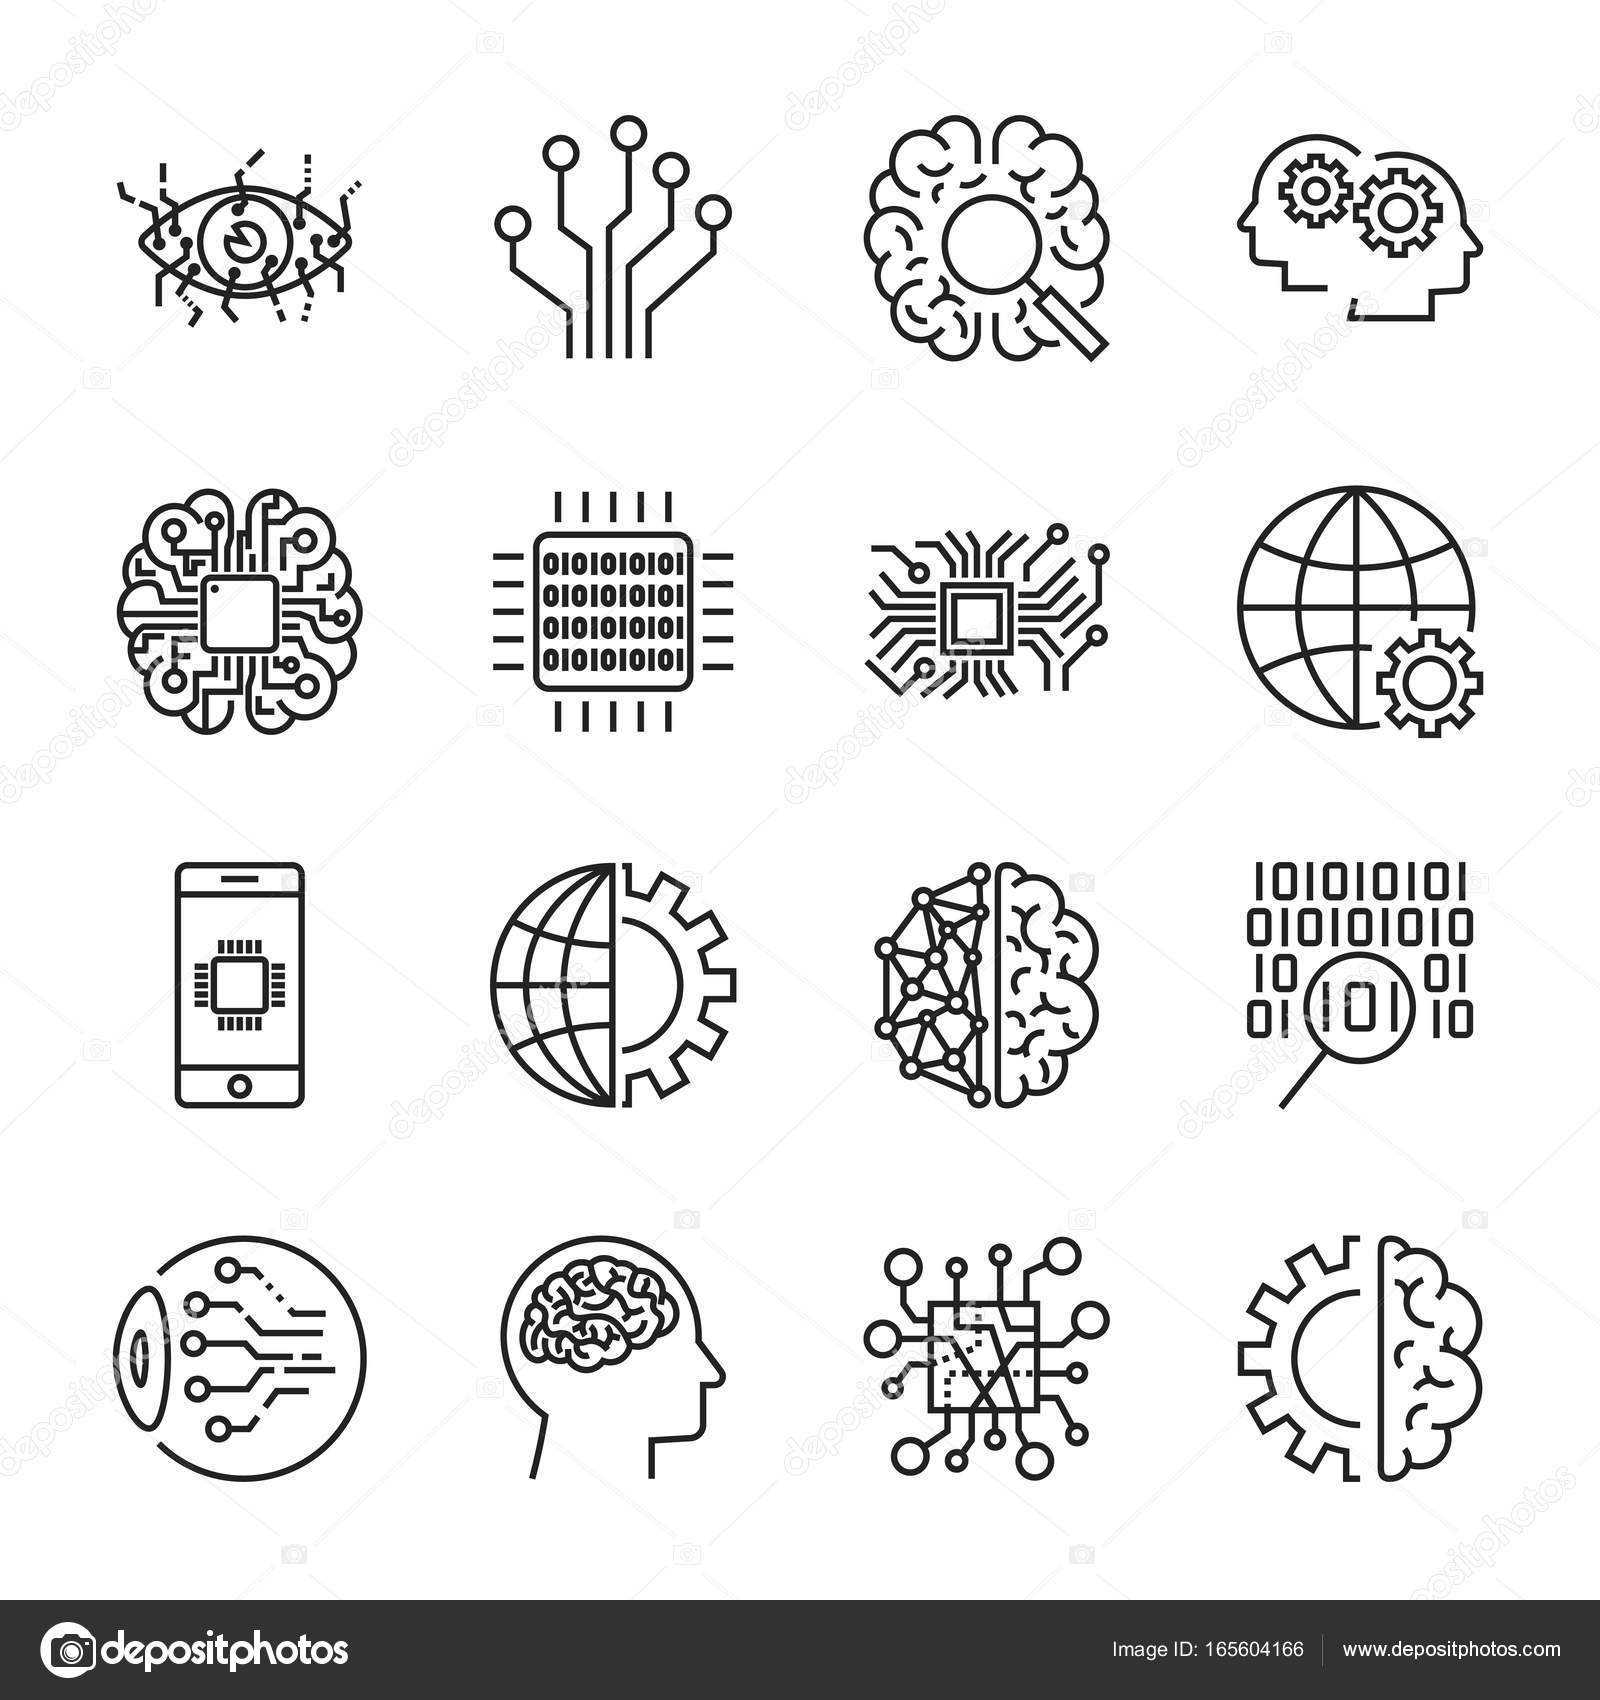 Artificial Intelligence. Vector icon set for artificial